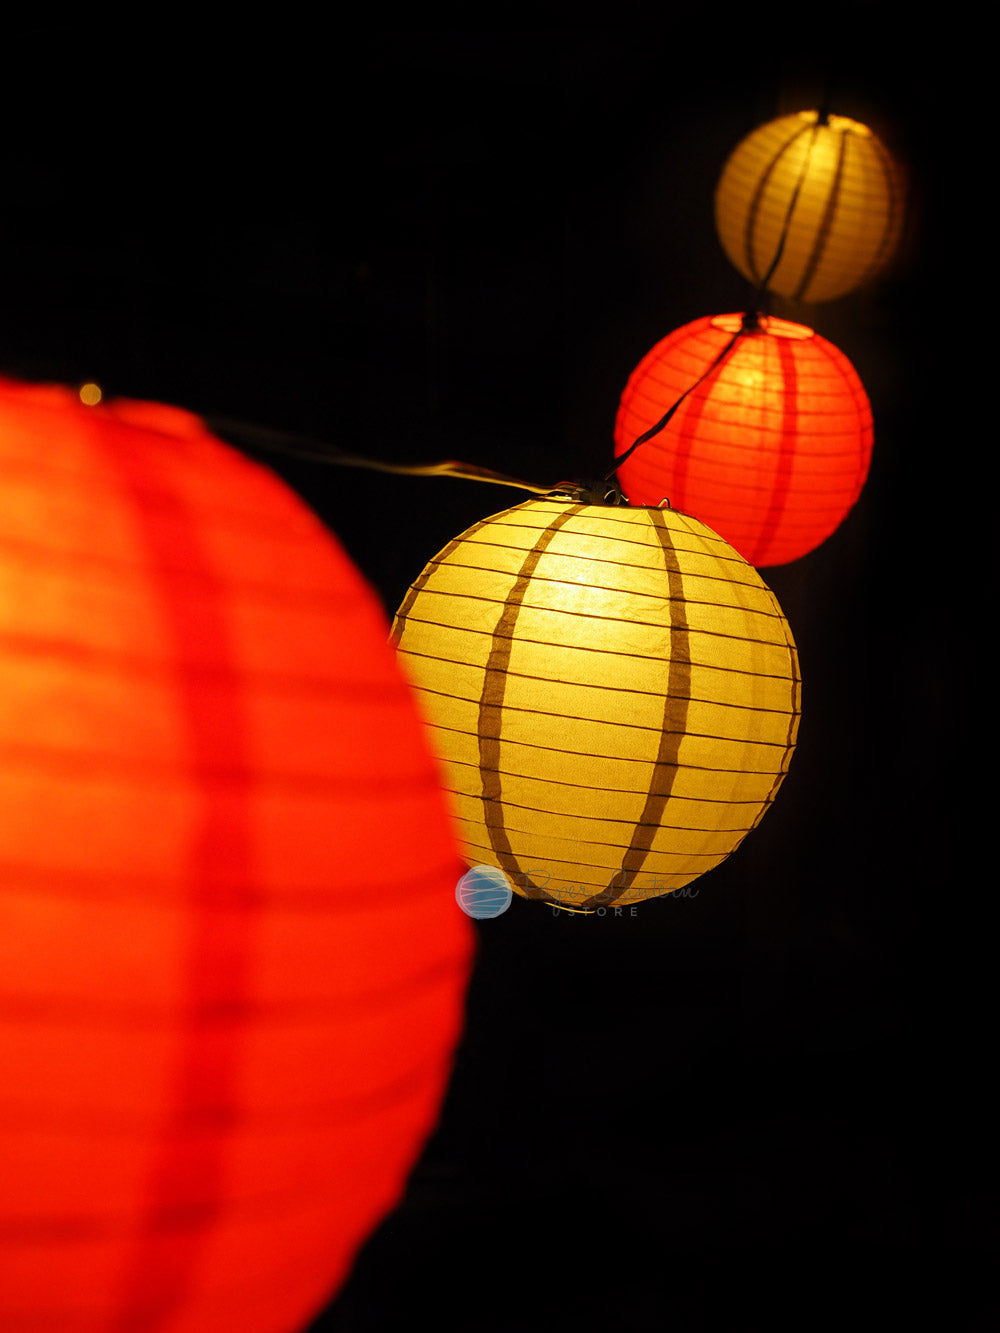 "12"" Chinese New Year Red and Gold Paper Lantern String Light COMBO Kit (31 FT, EXPANDABLE, Black Cord) - PaperLanternStore.com - Paper Lanterns, Decor, Party Lights & More"